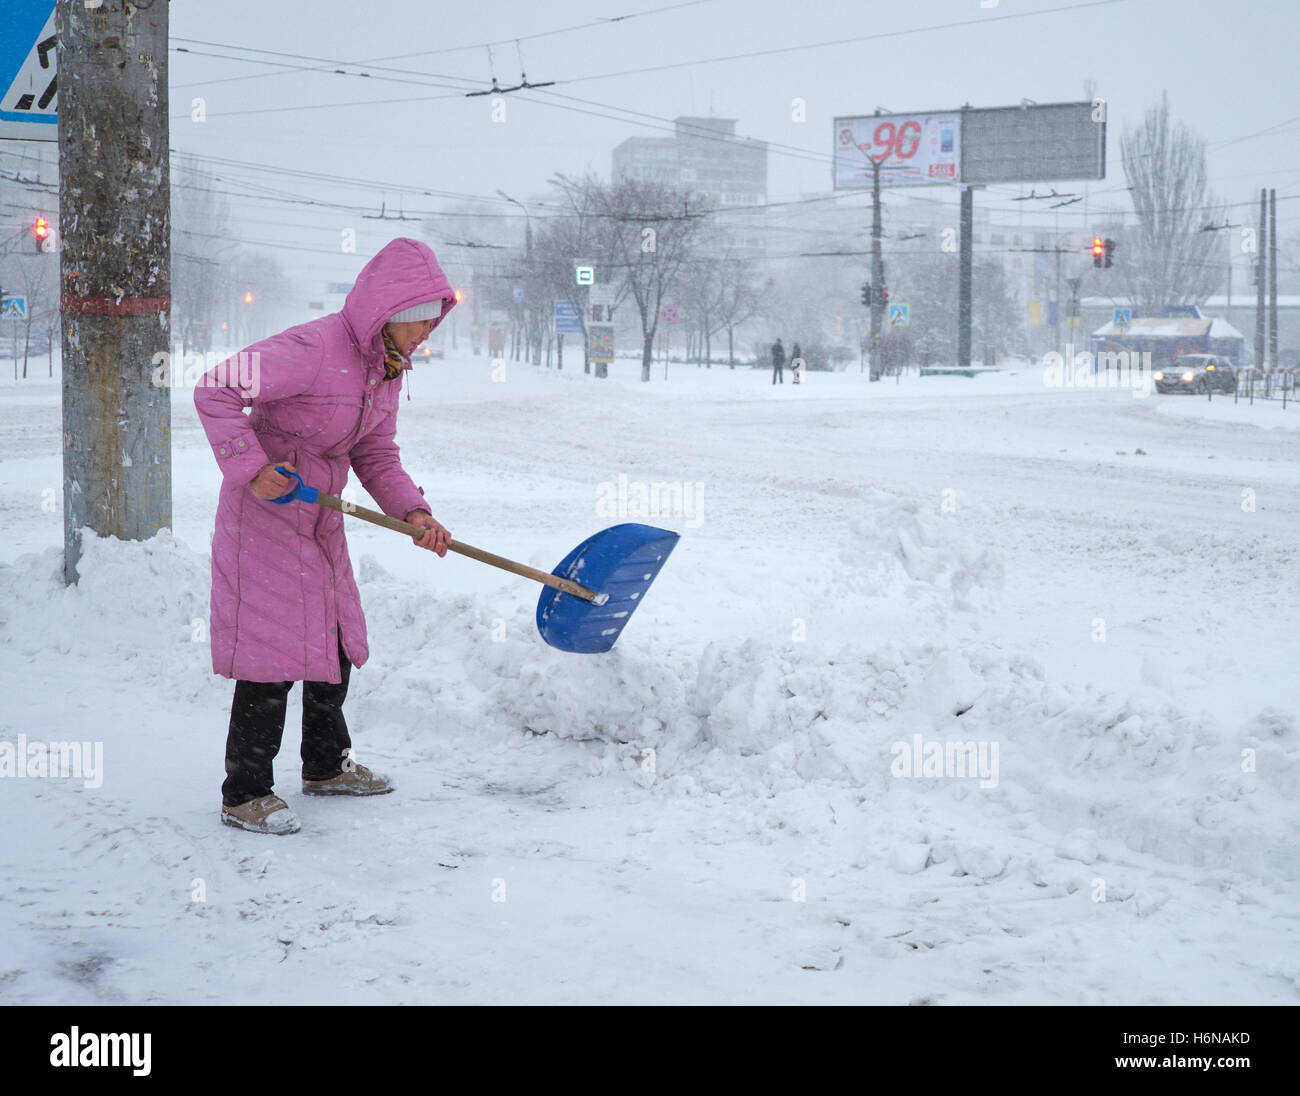 Kryvyi Rih, Ukraine - January, 17, 2016: Woman in the pink coat cleaning the snow with blue shovel from the sidewalk - Stock Image